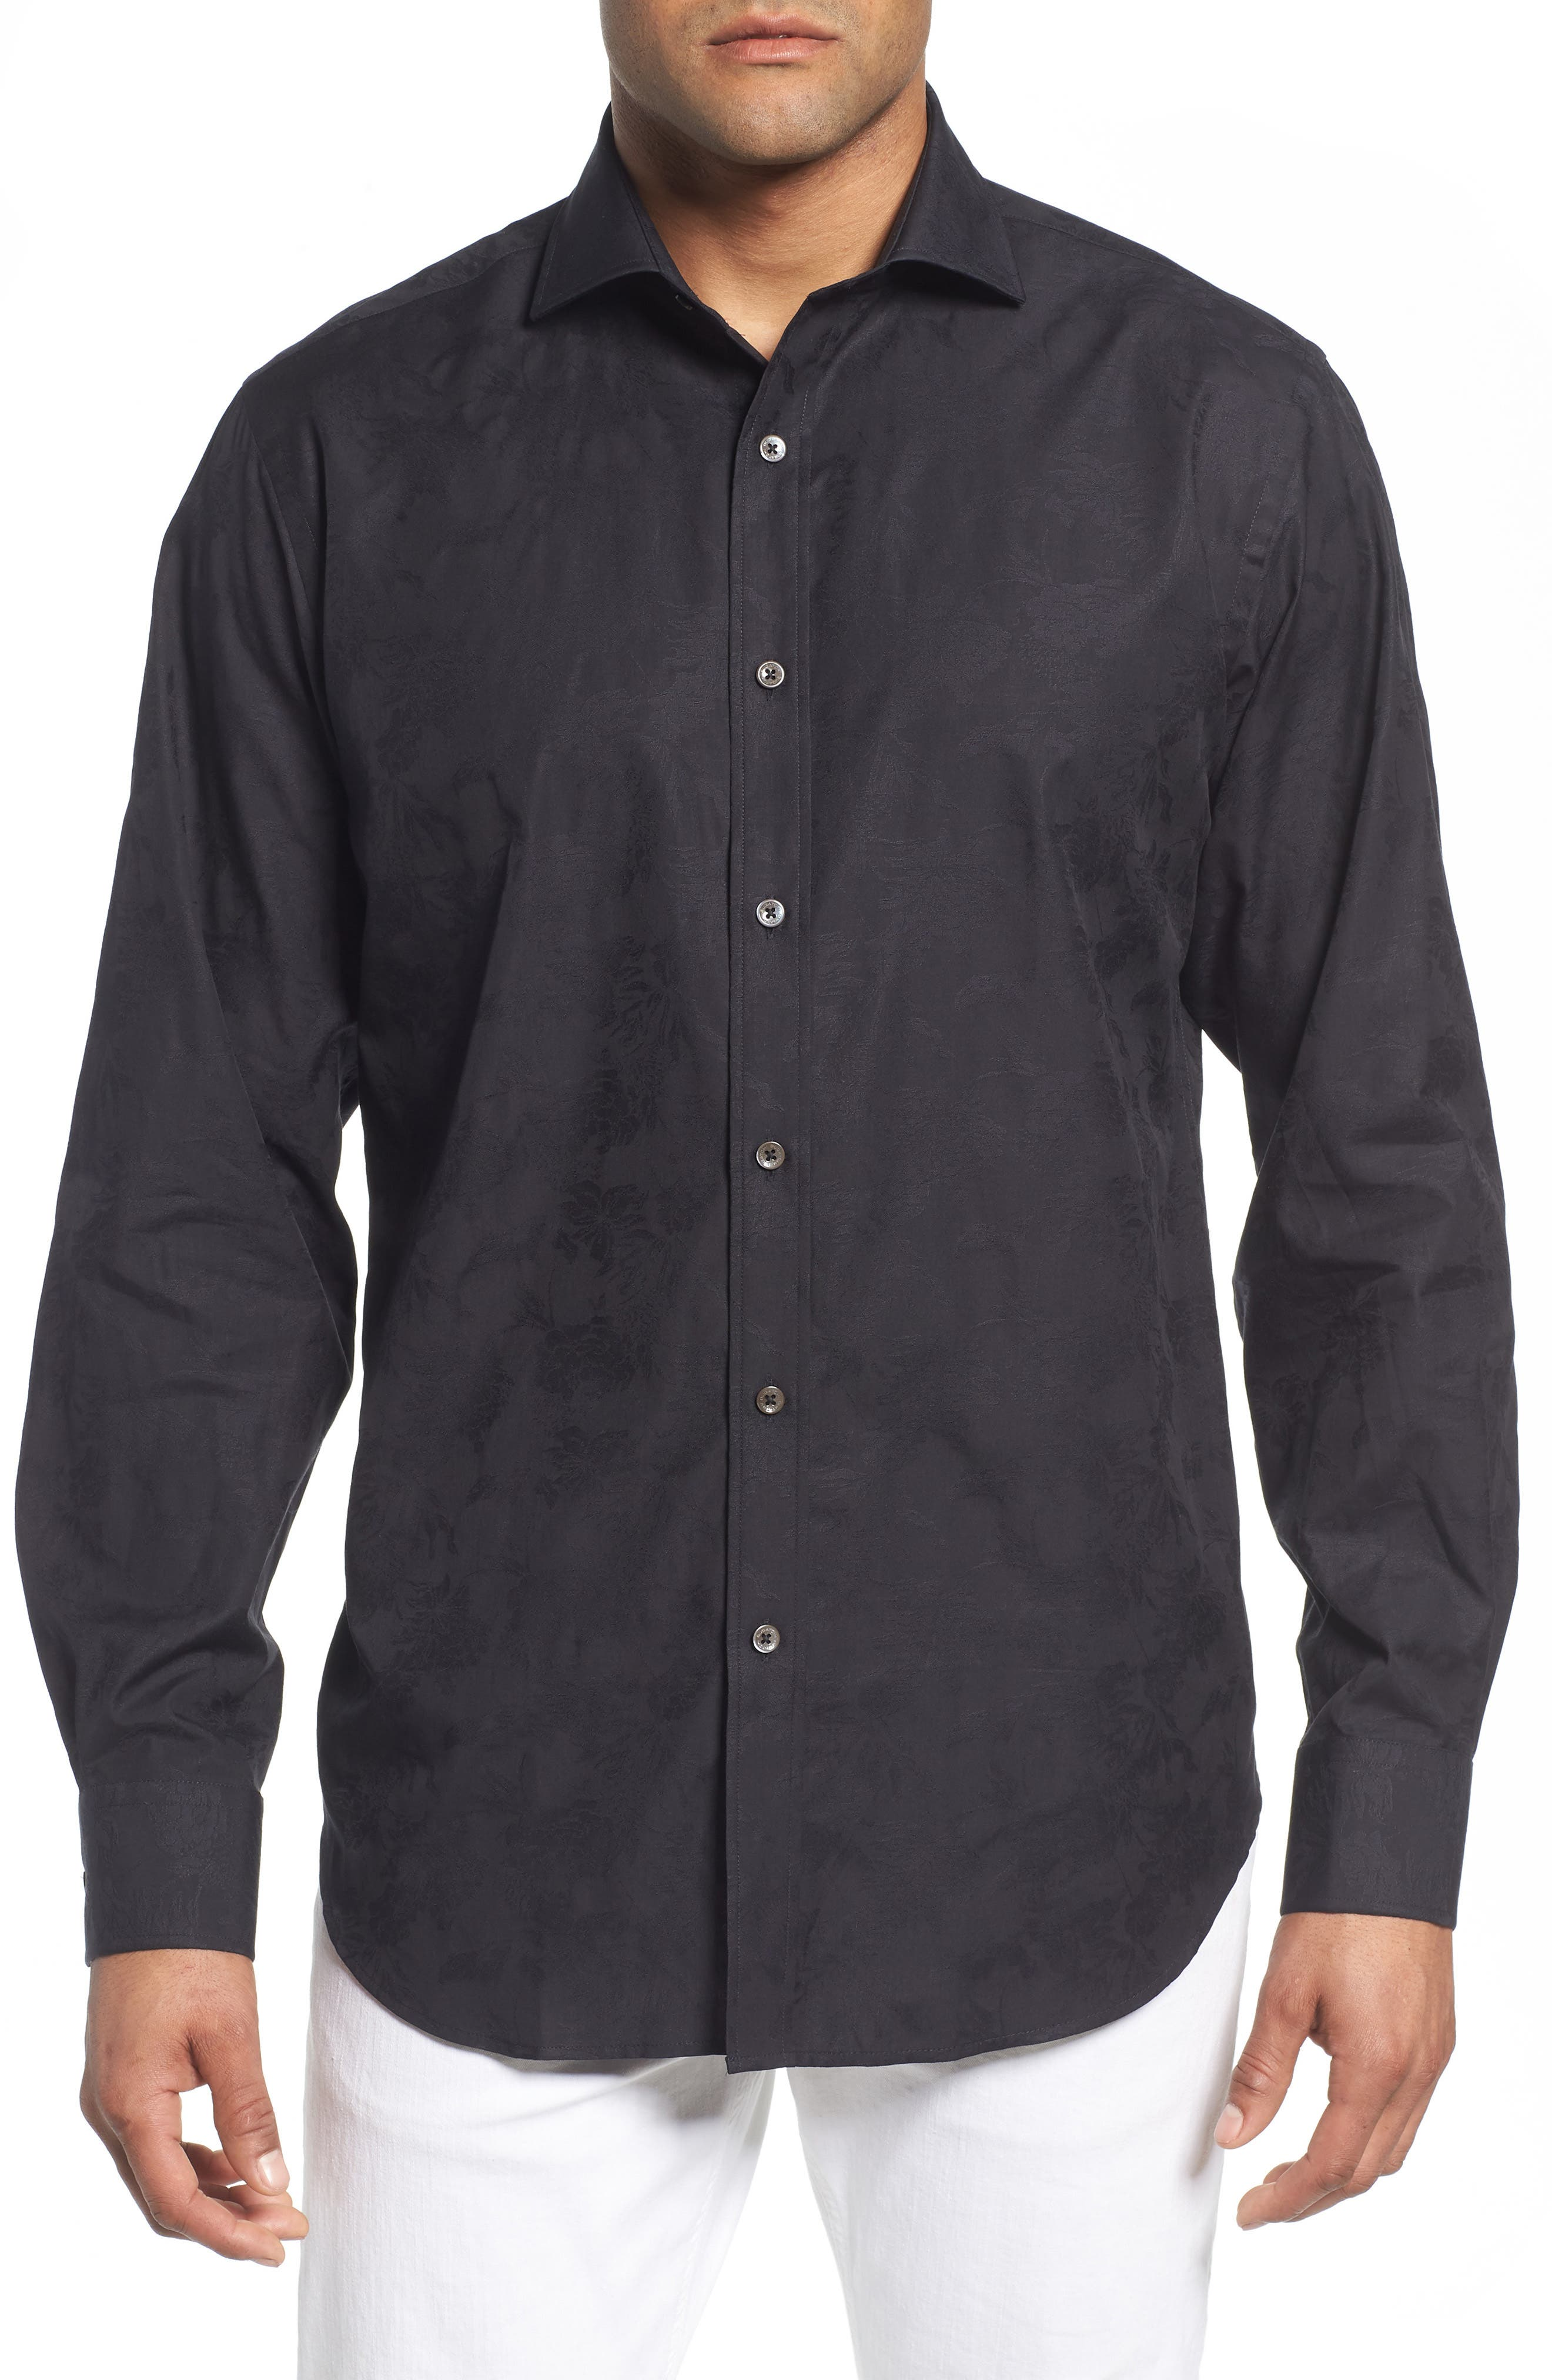 Classic Fit Tonal Jacquard Sport Shirt,                         Main,                         color, Black